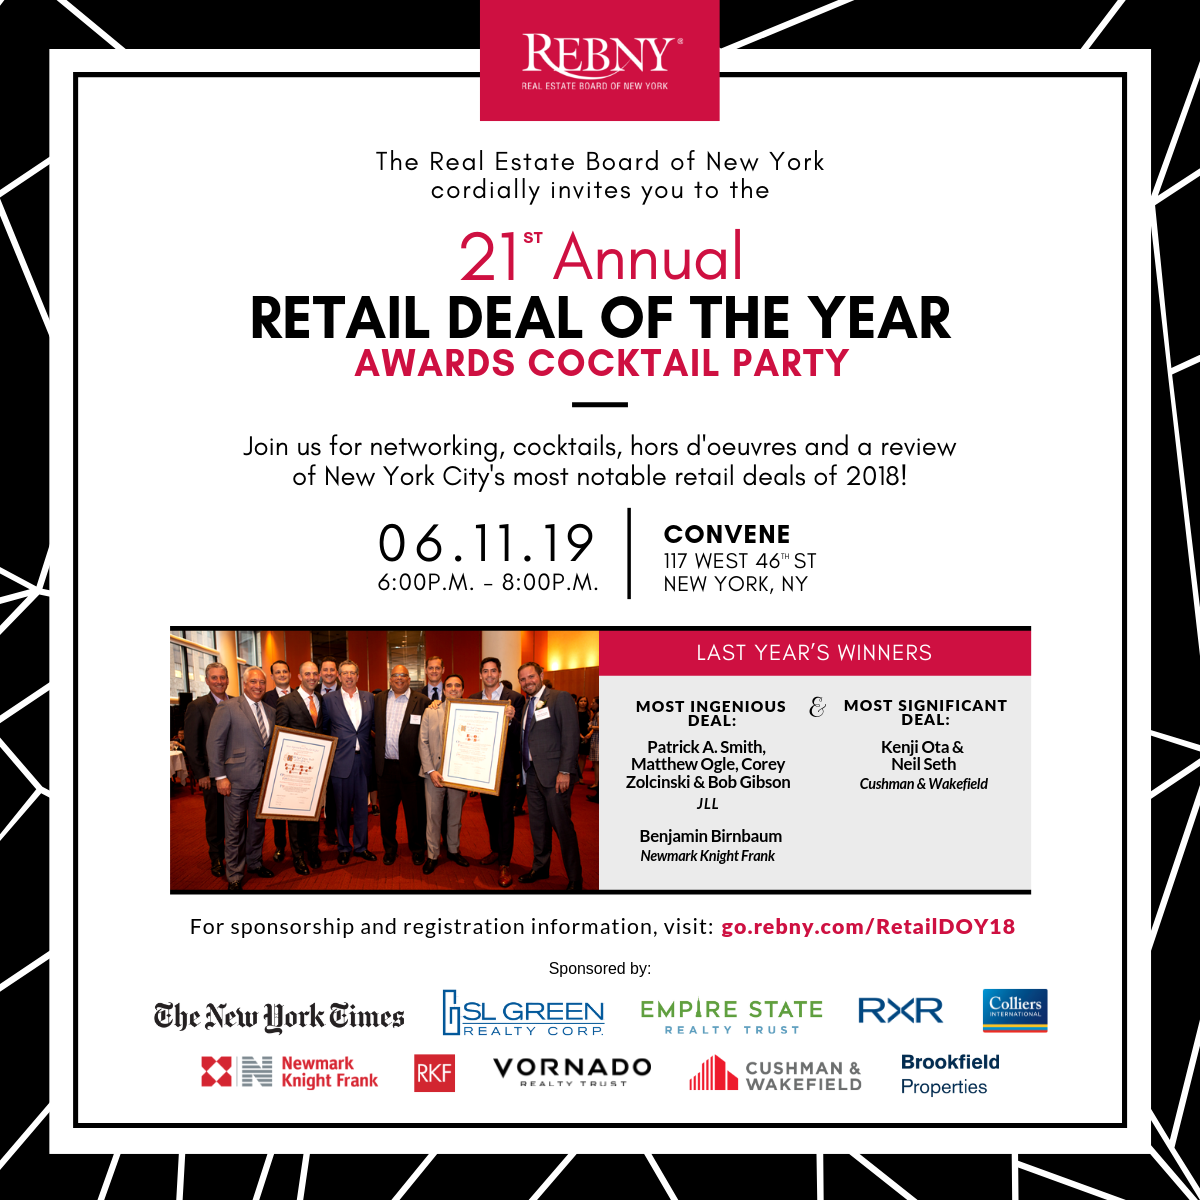 Retail Deal of the Year Awards Cocktail Party